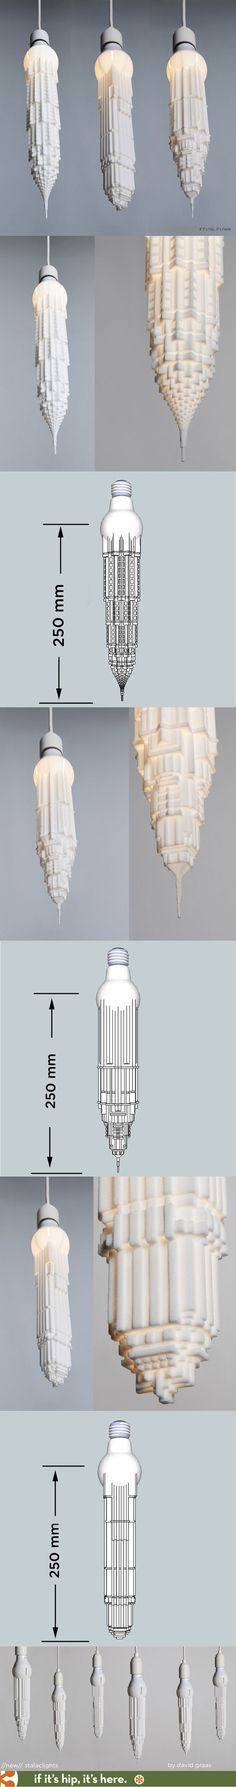 Stalaclights - 3D printed Upside Down Art Deco Skyscrapers on LED Bulbs make for awesome pendant lights. Maybe something for 3D Printer Chat?